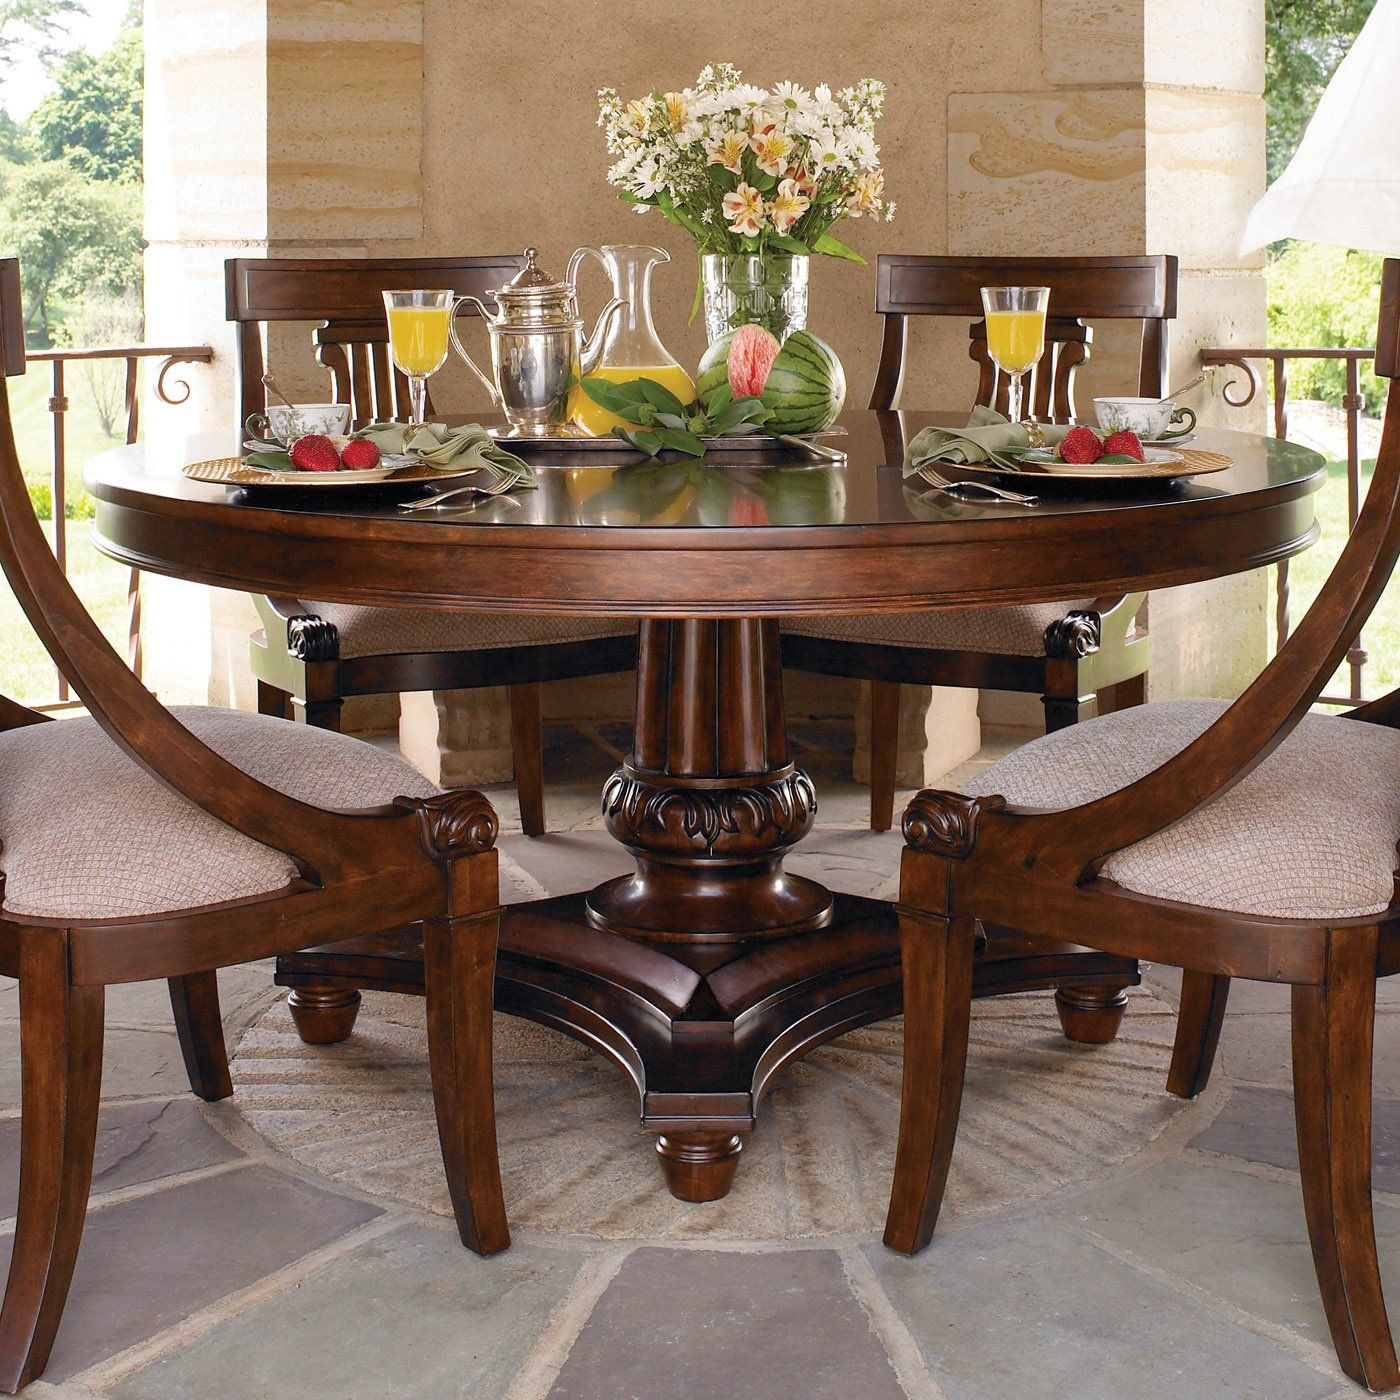 Kincaid Furniture Sturlyn Round Dining Table:Rochester, NY